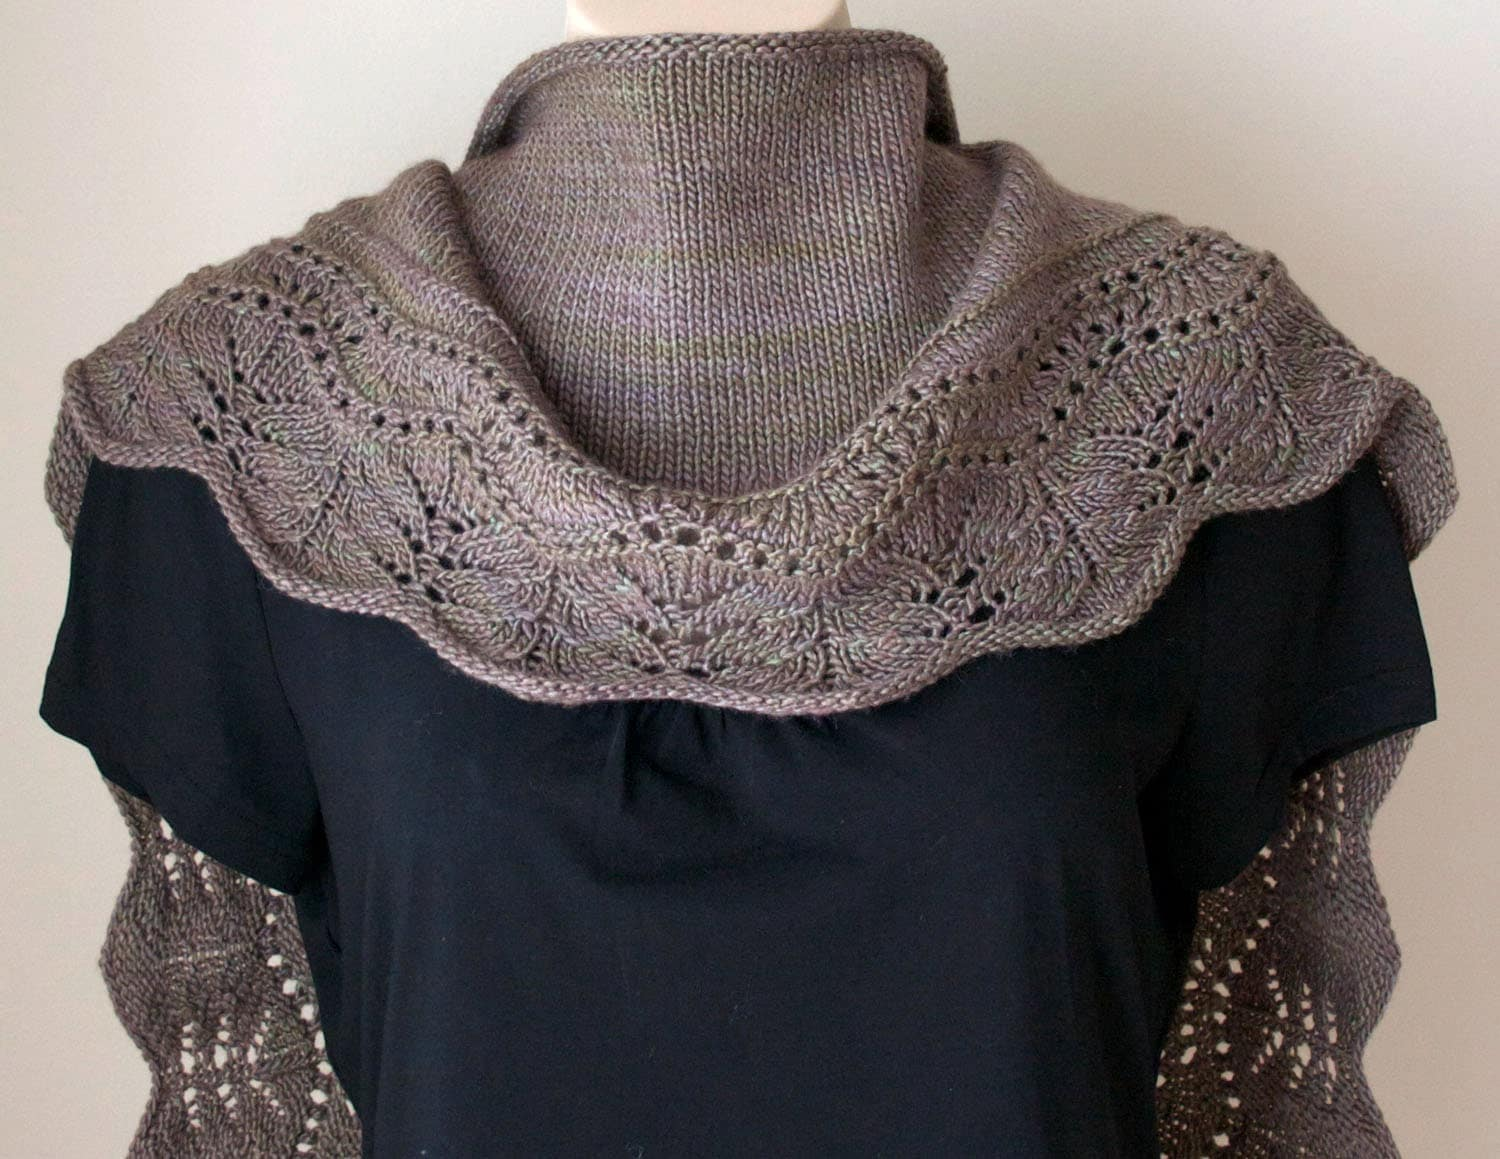 Knitting pattern shawl Farniente Shawl small version Brown